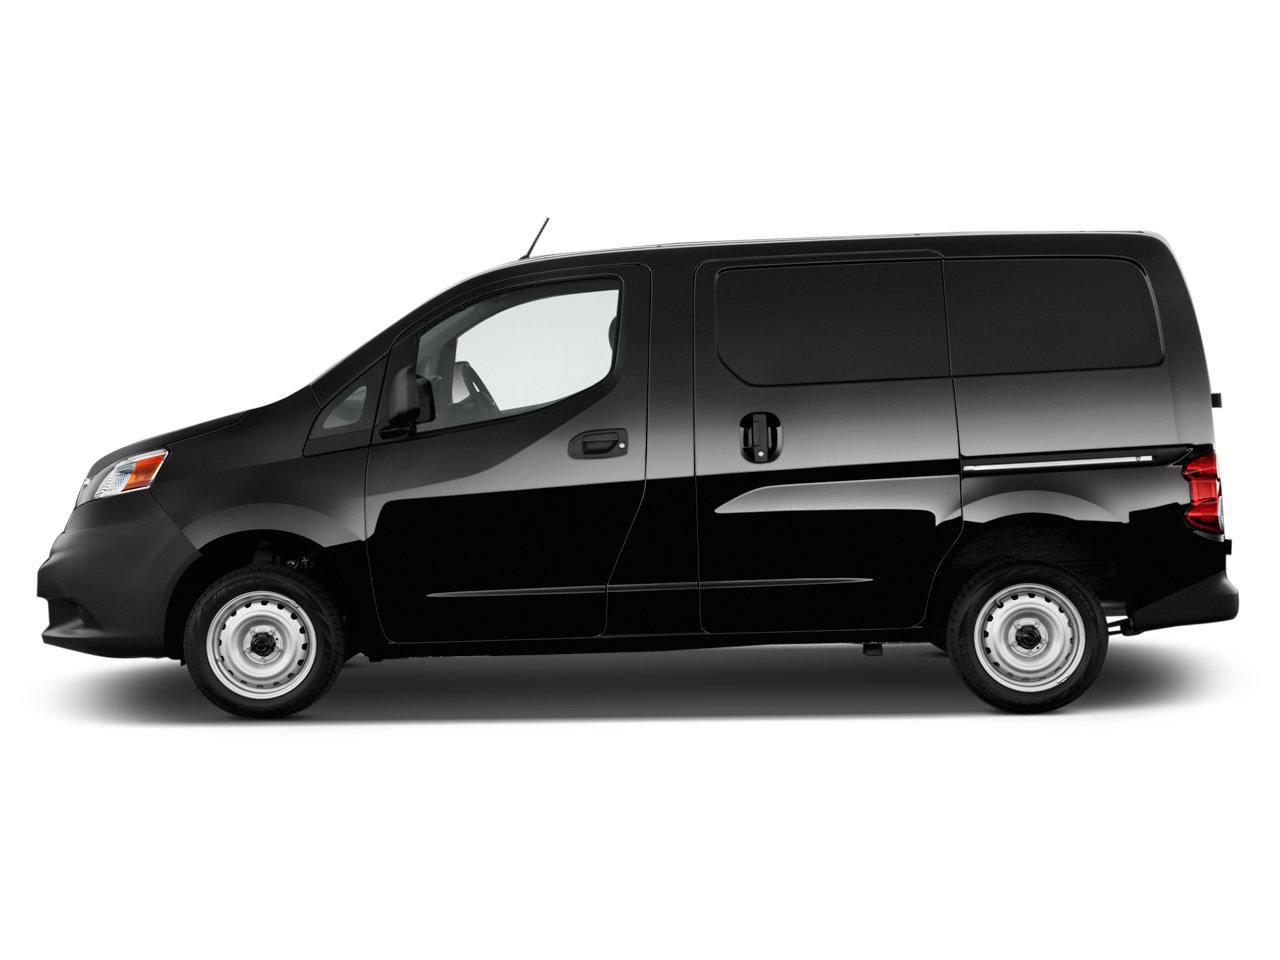 2016 Nissan Nv200 Review Ratings Specs Prices And Photos The Car Connection